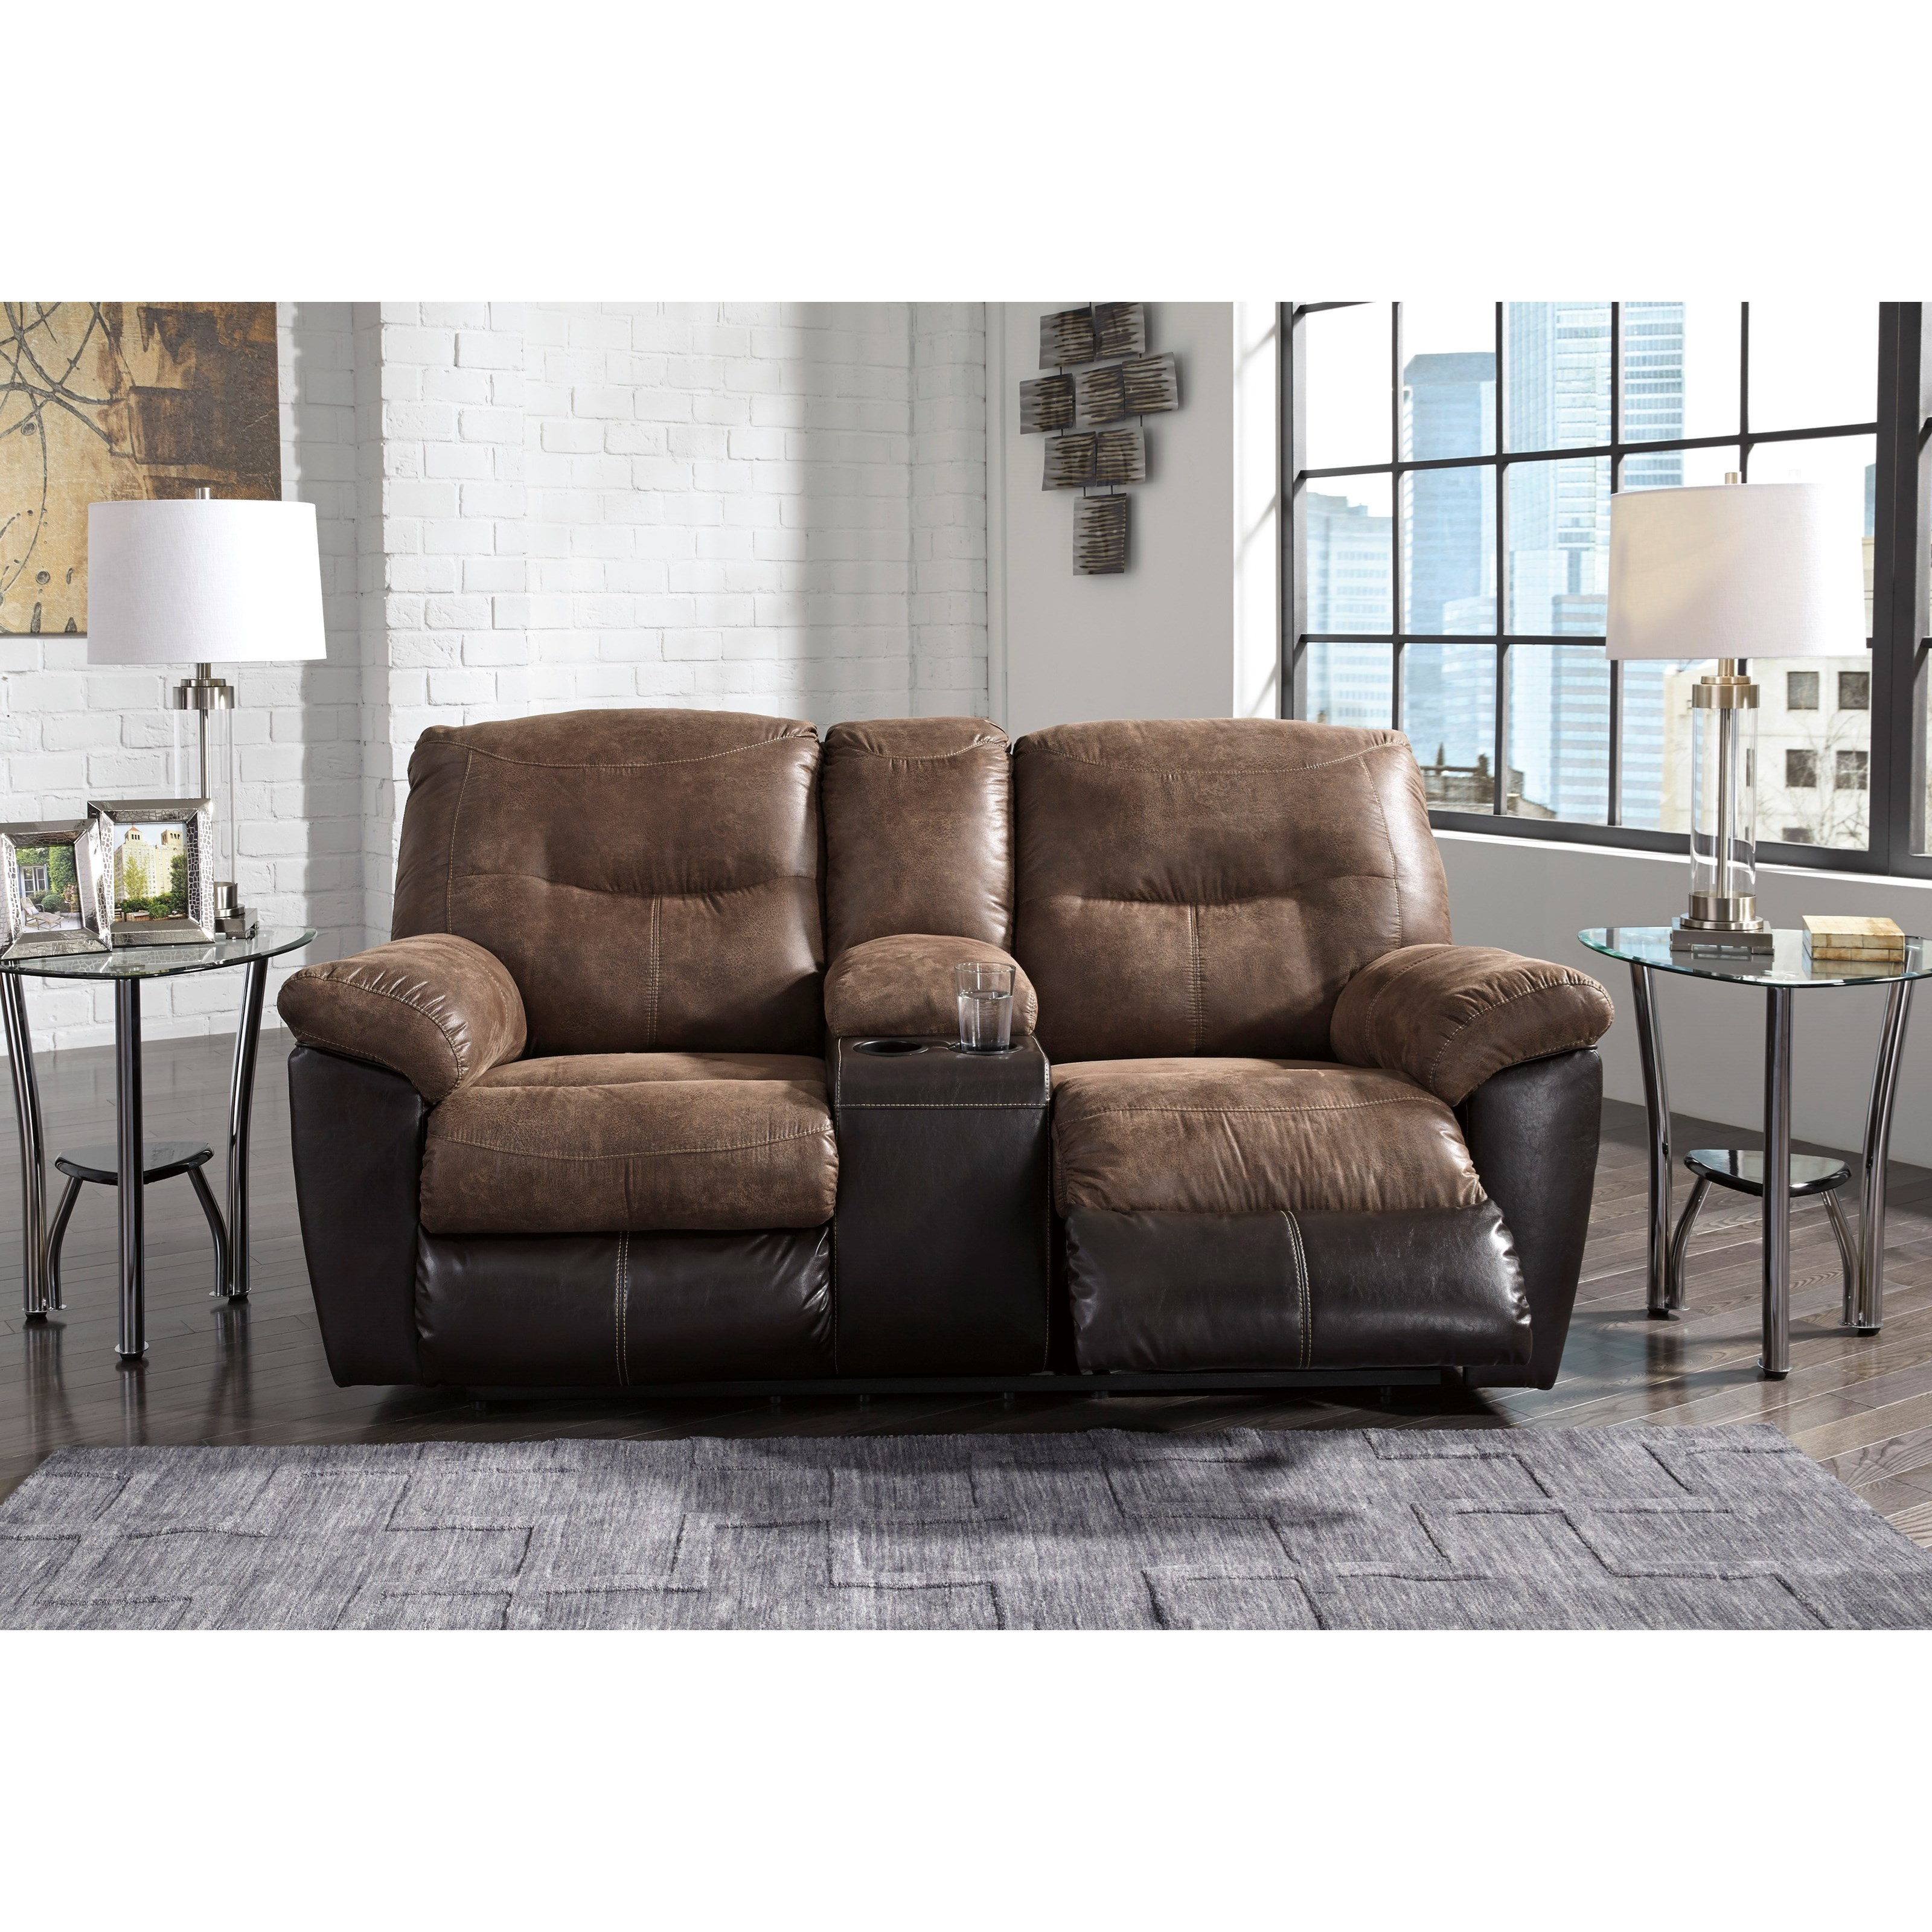 Two-Tone Faux Leather Double Reclining Loveseat w/ Console  sc 1 st  Wolf Furniture & Two-Tone Faux Leather Double Reclining Loveseat w/ Console by ... islam-shia.org